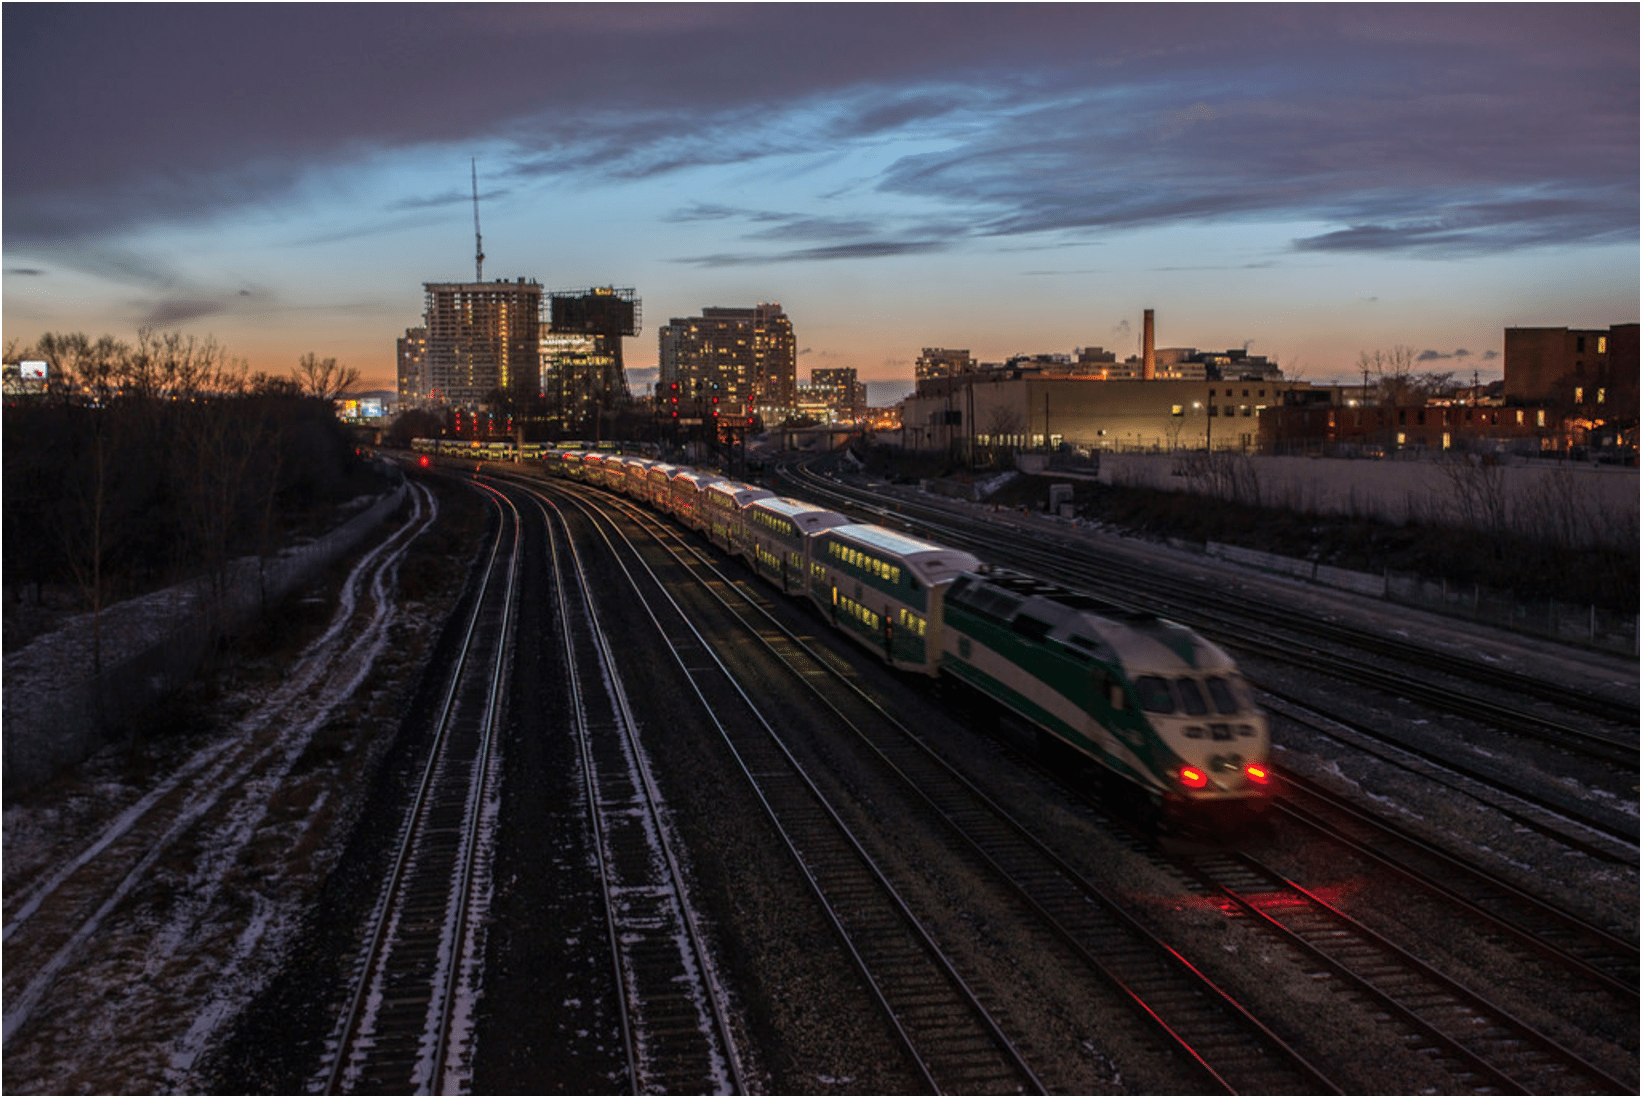 Photo by Ben Roffelsen Photography in the Torontoist Flickr Pool.